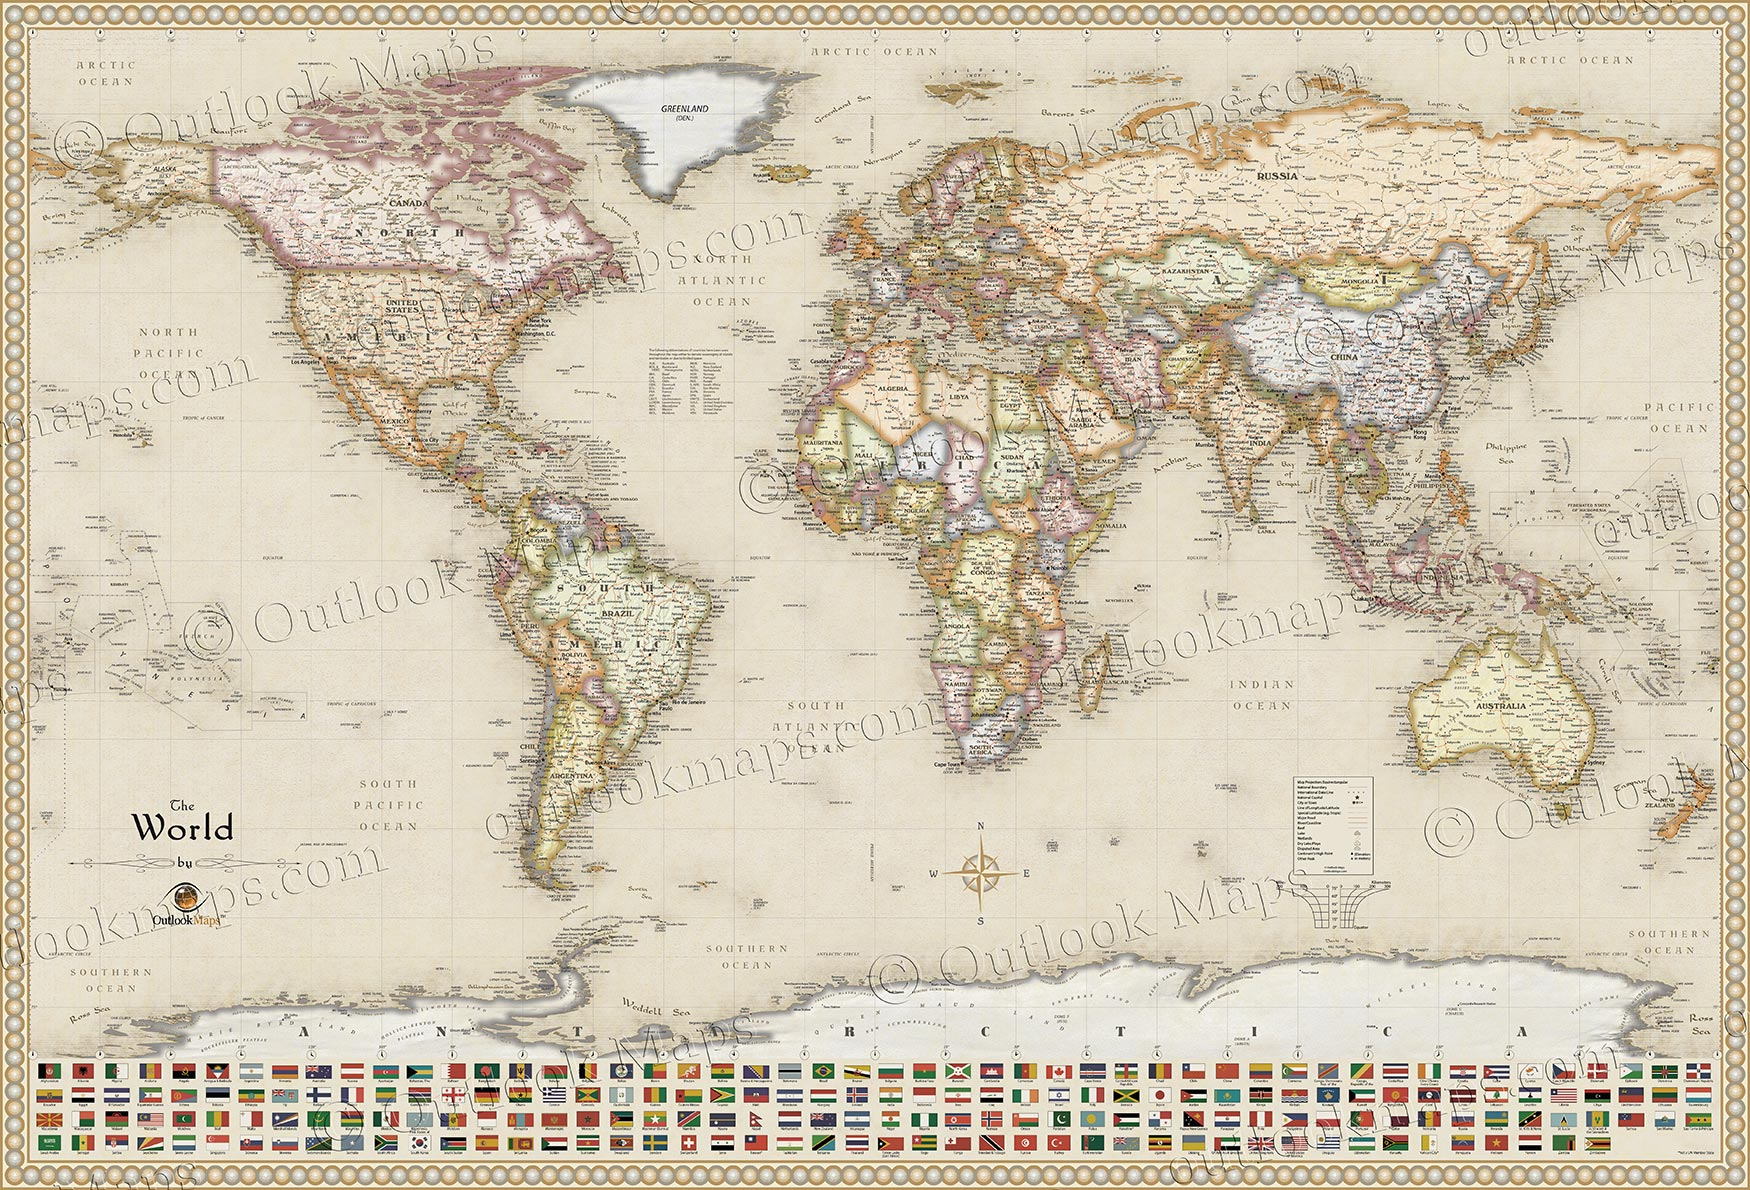 Classic antique map style executive world map with flags antique style world map with flags gumiabroncs Image collections